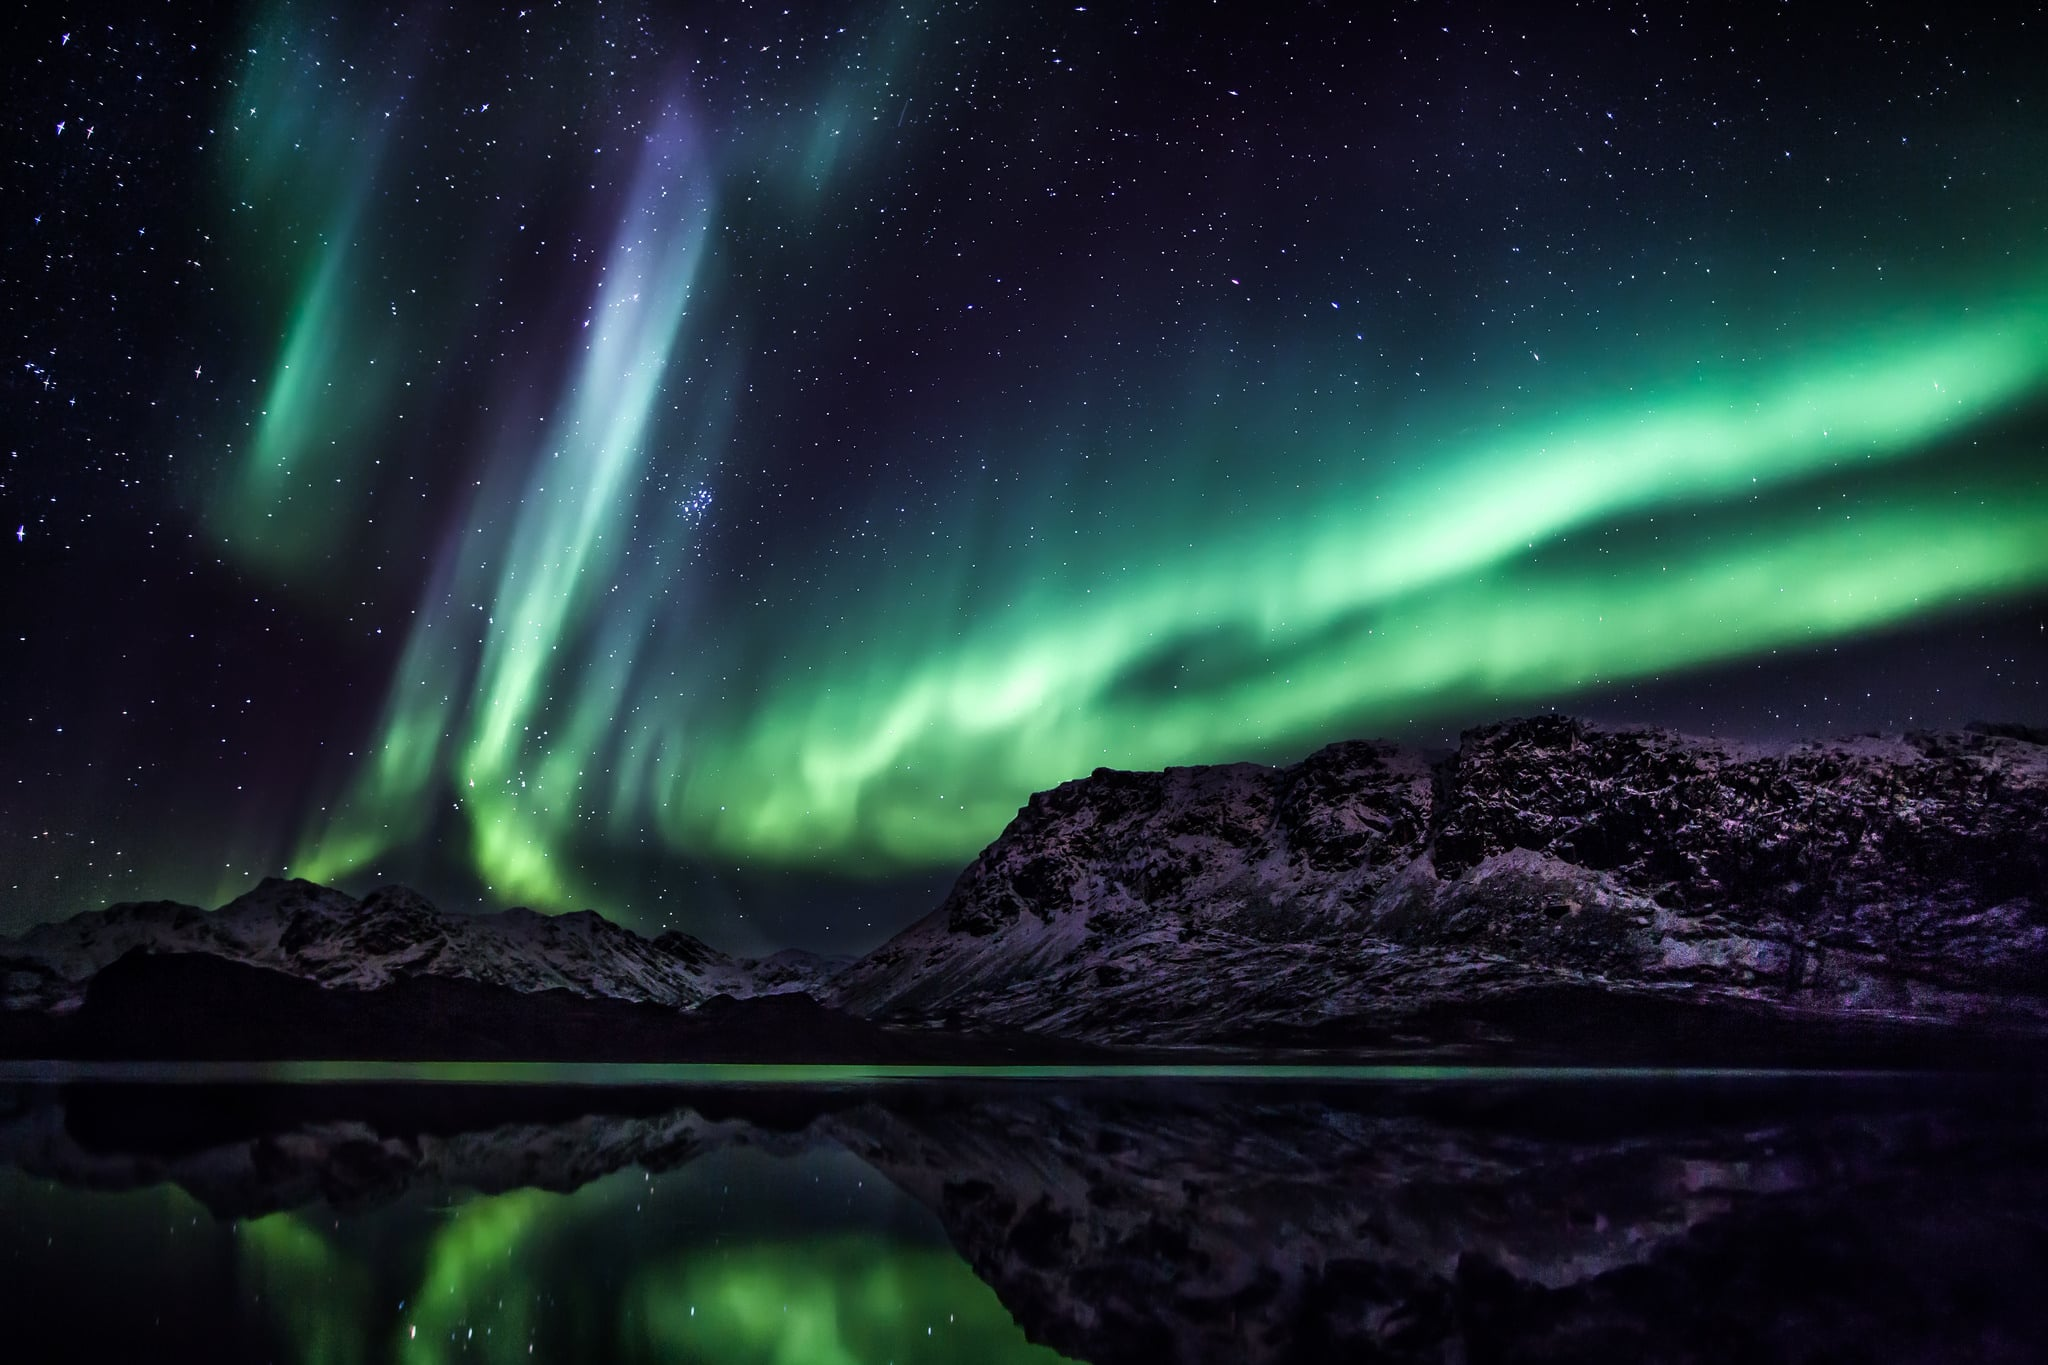 Greenland Travel - CCby